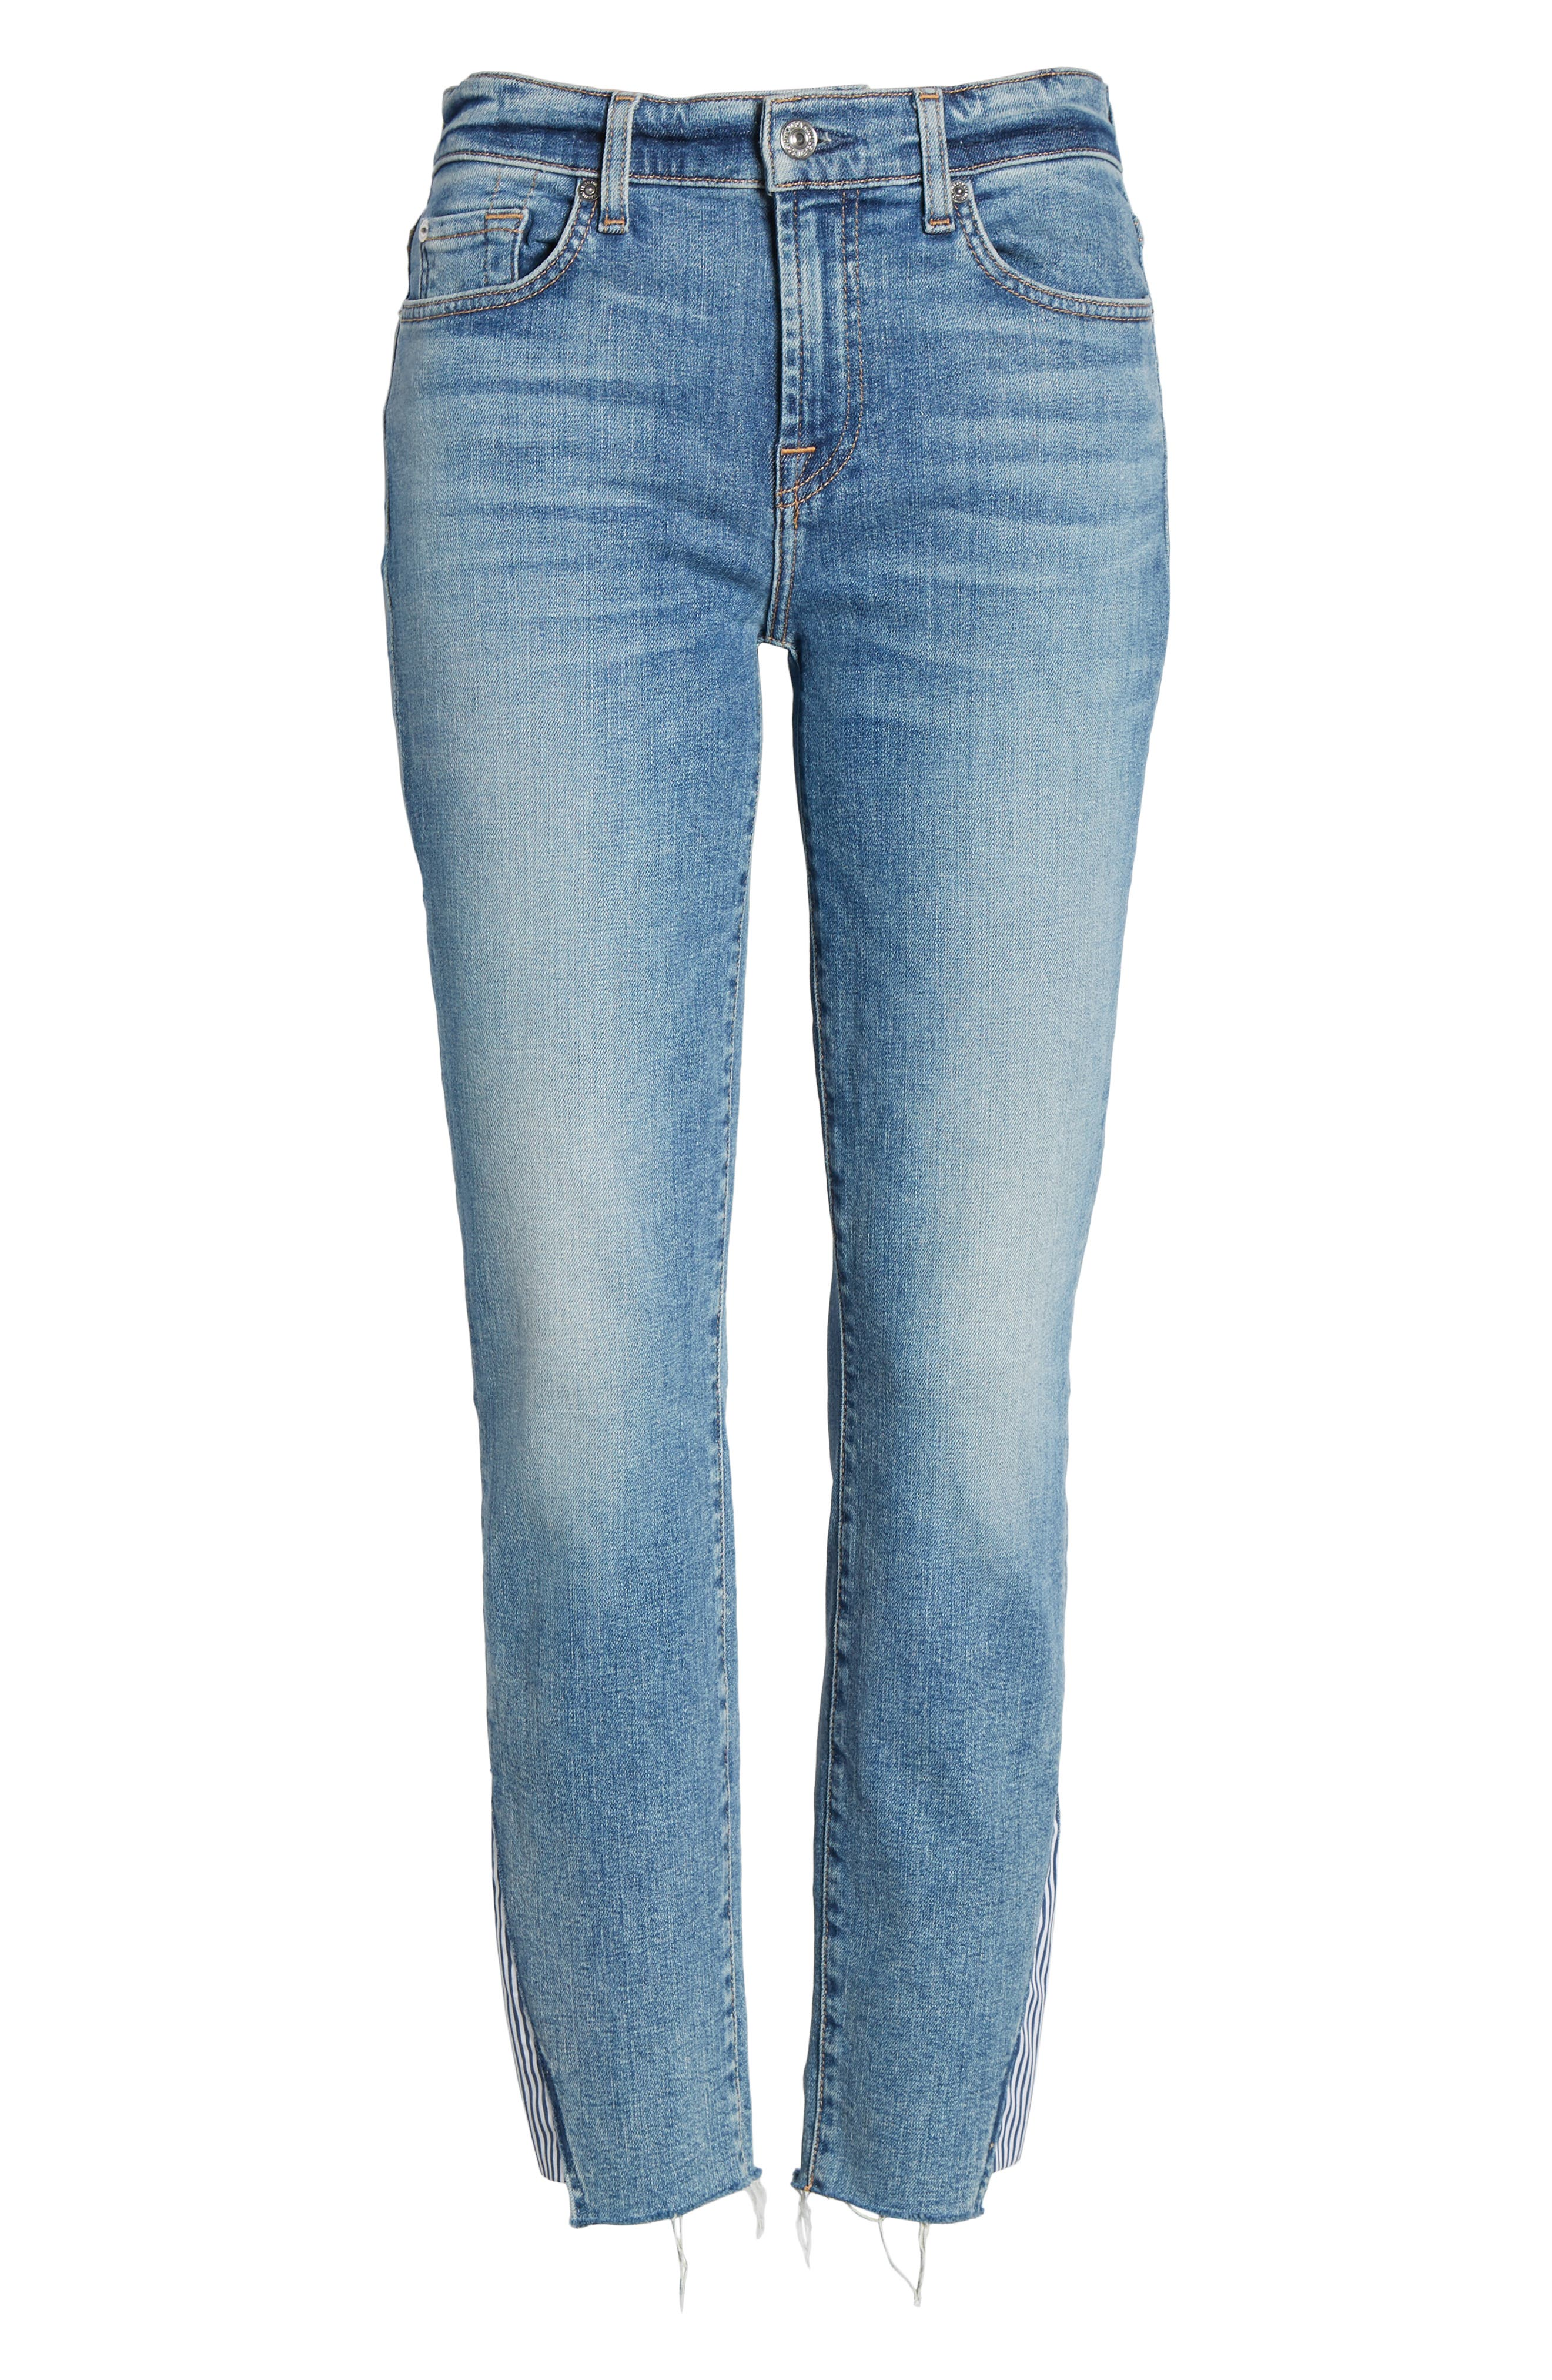 7 FOR ALL MANKIND<SUP>®</SUP>, Stripe Inset Ankle Skinny Jeans, Alternate thumbnail 7, color, SLOANE VINTAGE